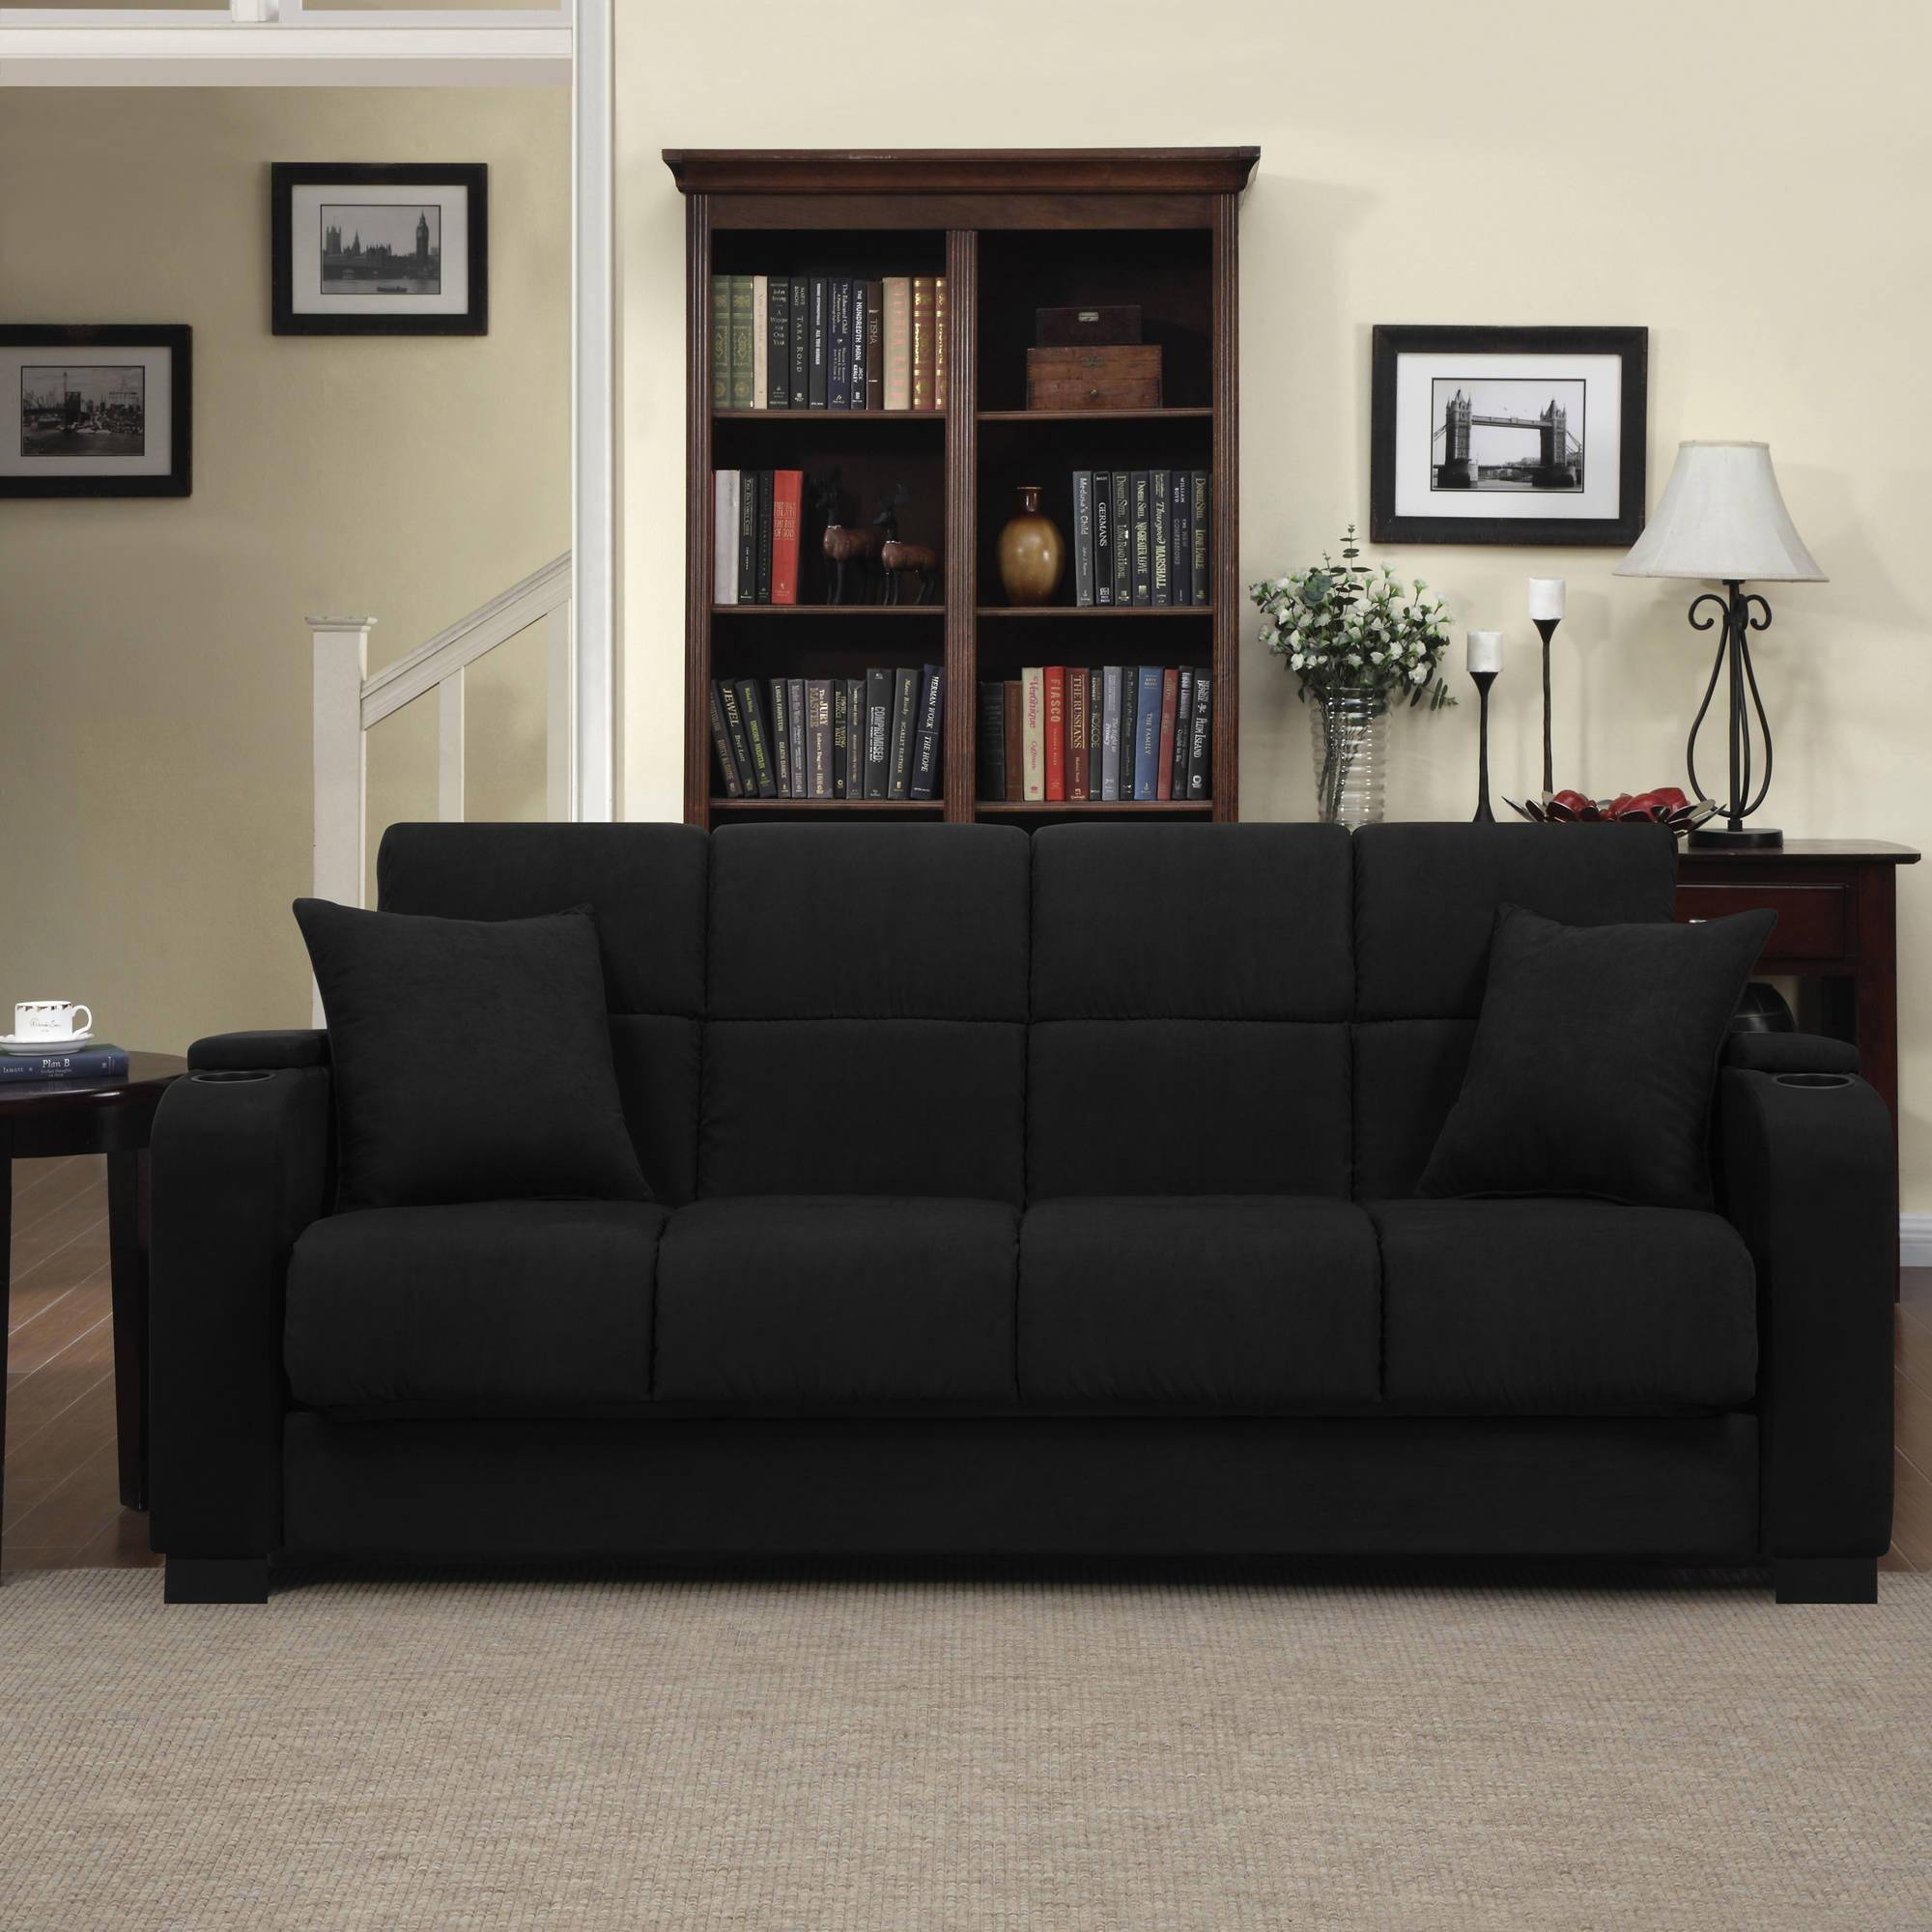 Furniture: Elegant Living Room Tufted Sofas Design With Couches with regard to Sofas With Black Cover (Image 8 of 15)